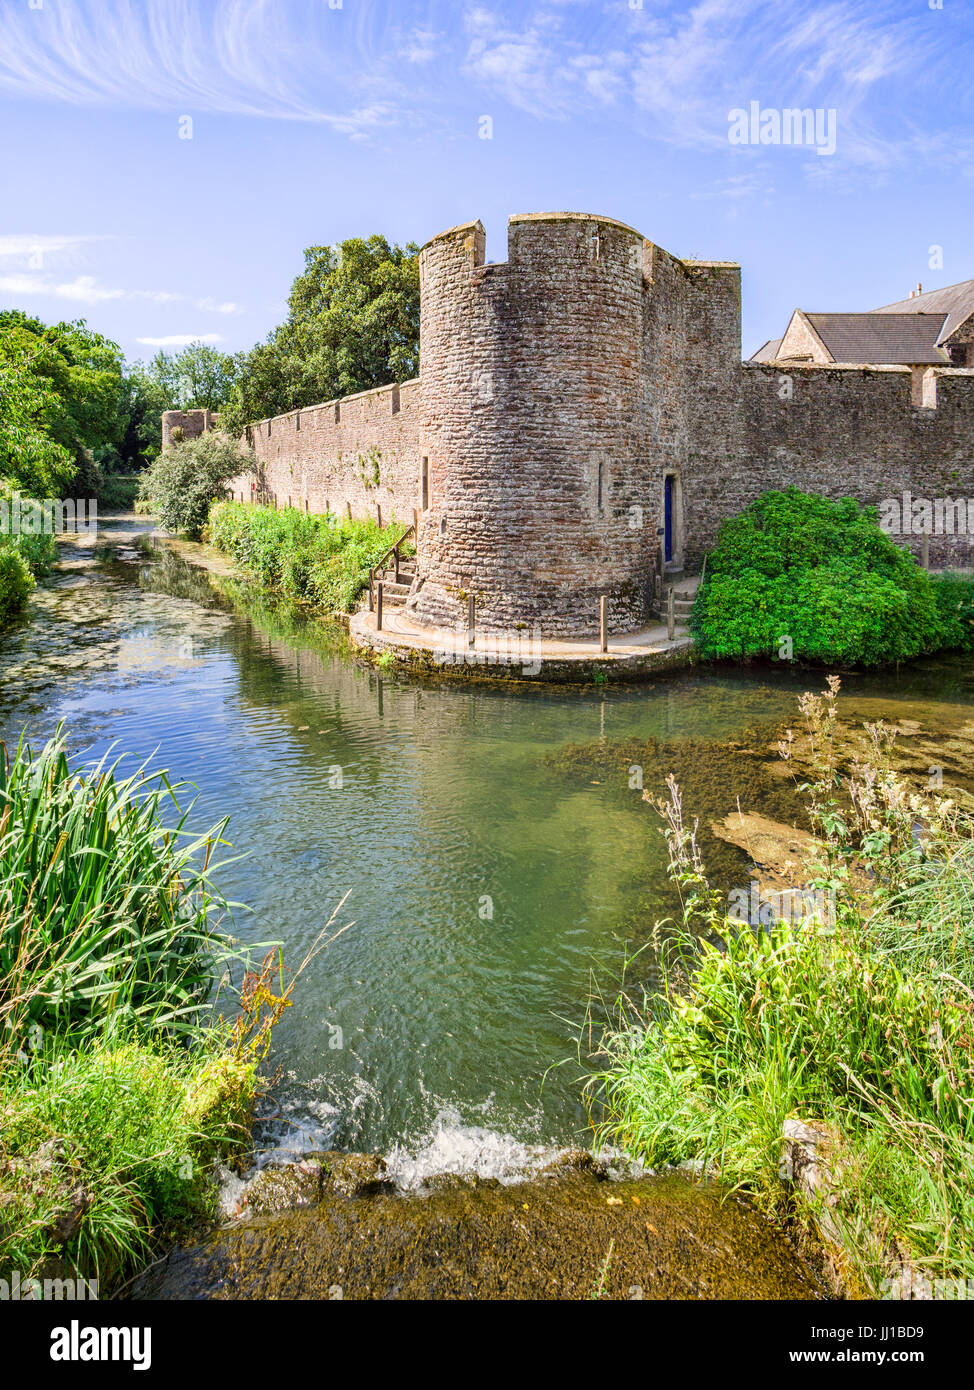 The moat and curtain wall surrounding the medieval Bishop's Palace at Wells, Somerset, England, UK. - Stock Image